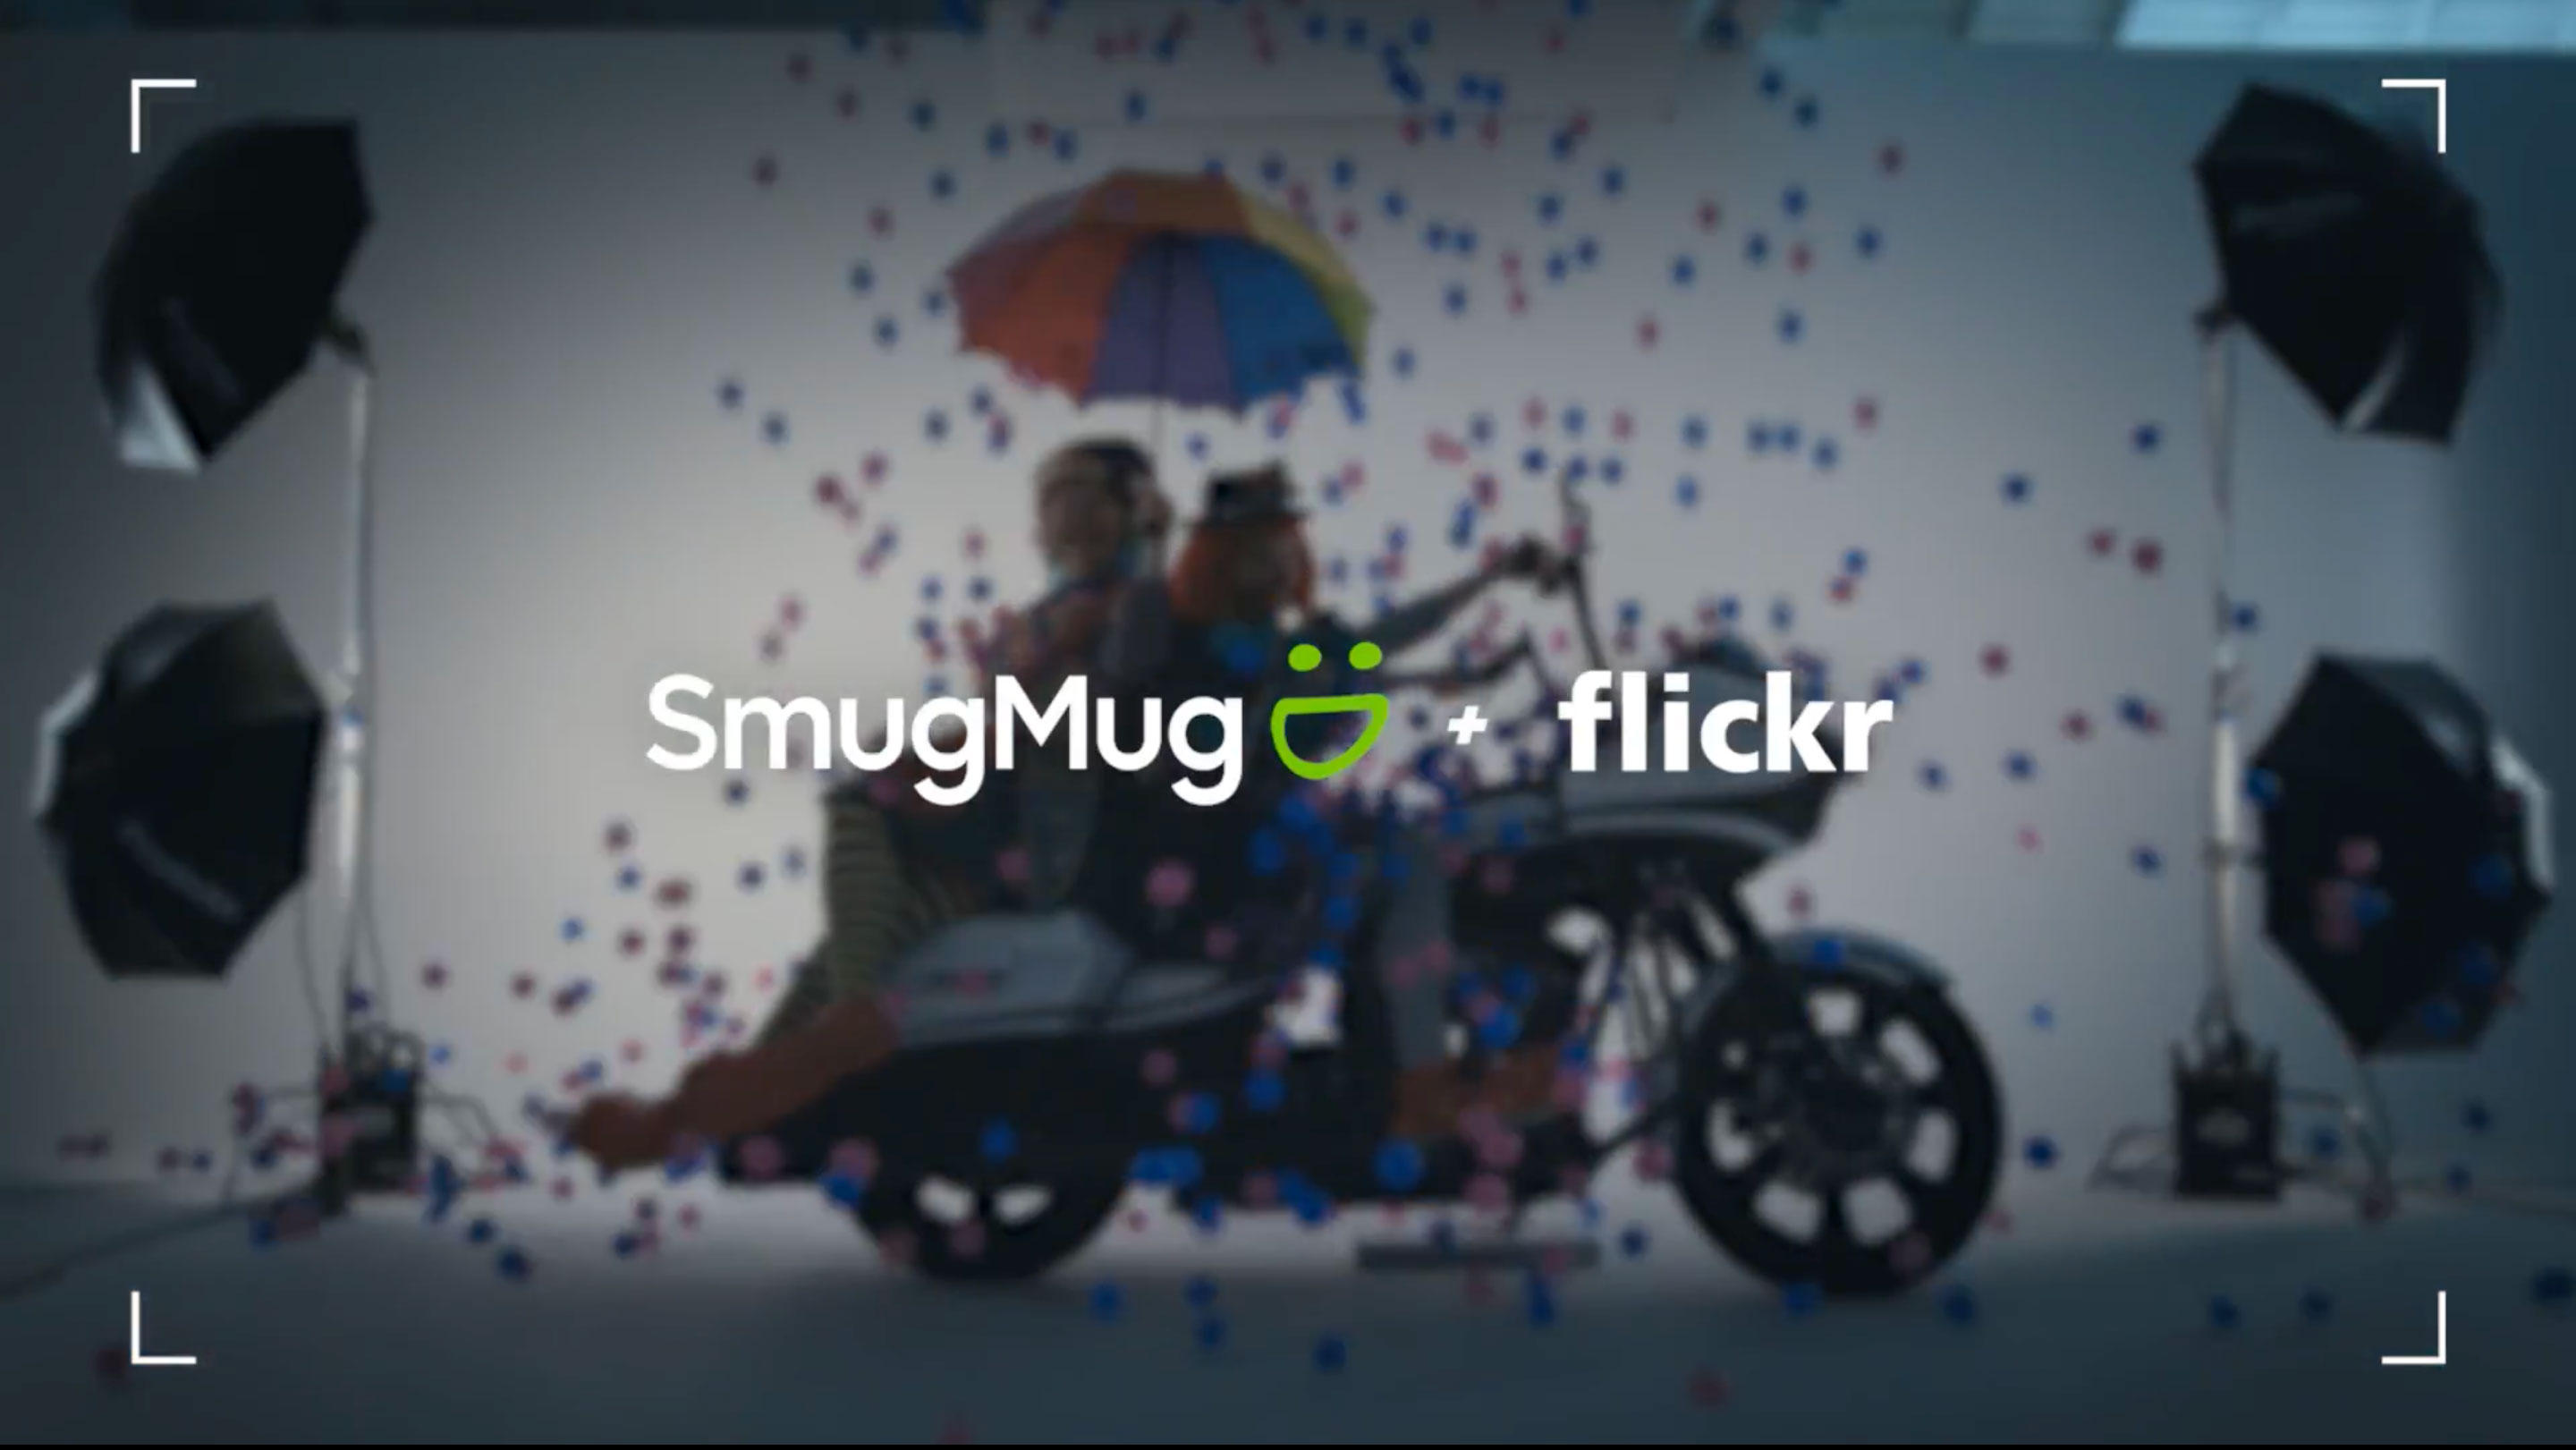 SmugMug announces its acquisition of photo-sharing pioneer Flickr.